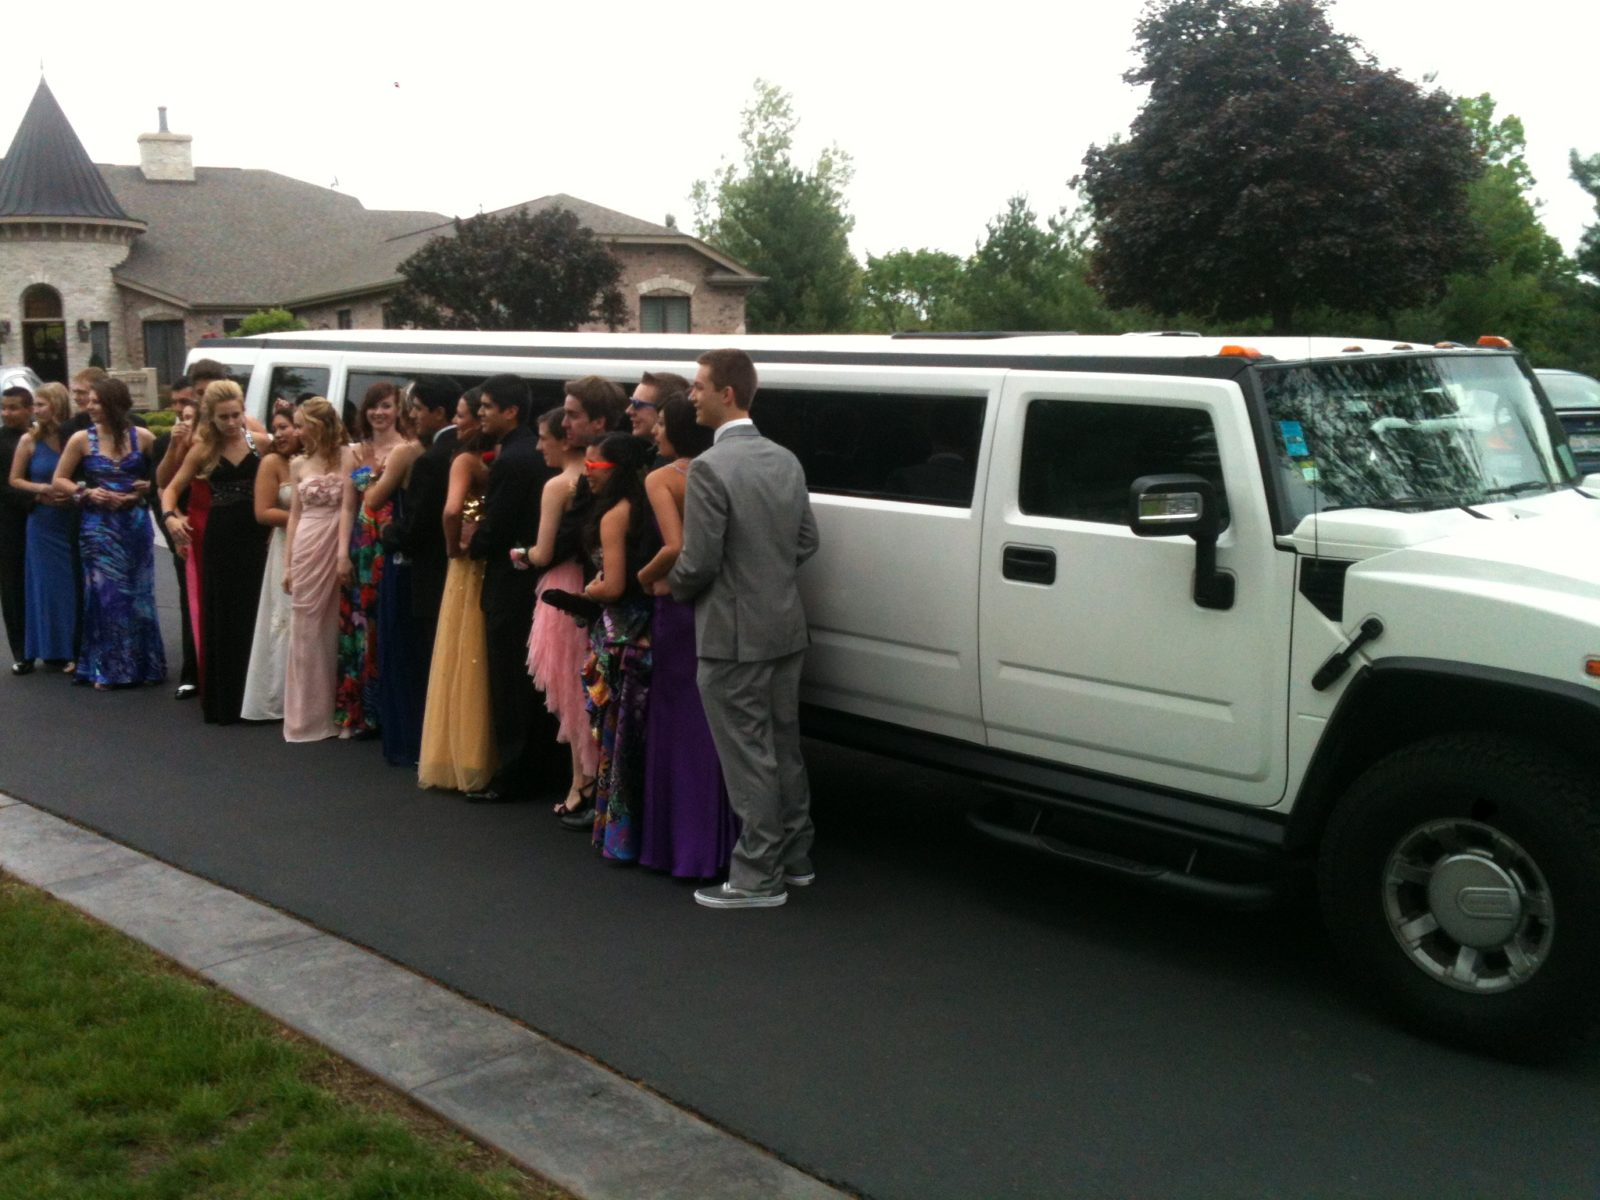 Things to consider when renting a prom limo 1st Class Transportation